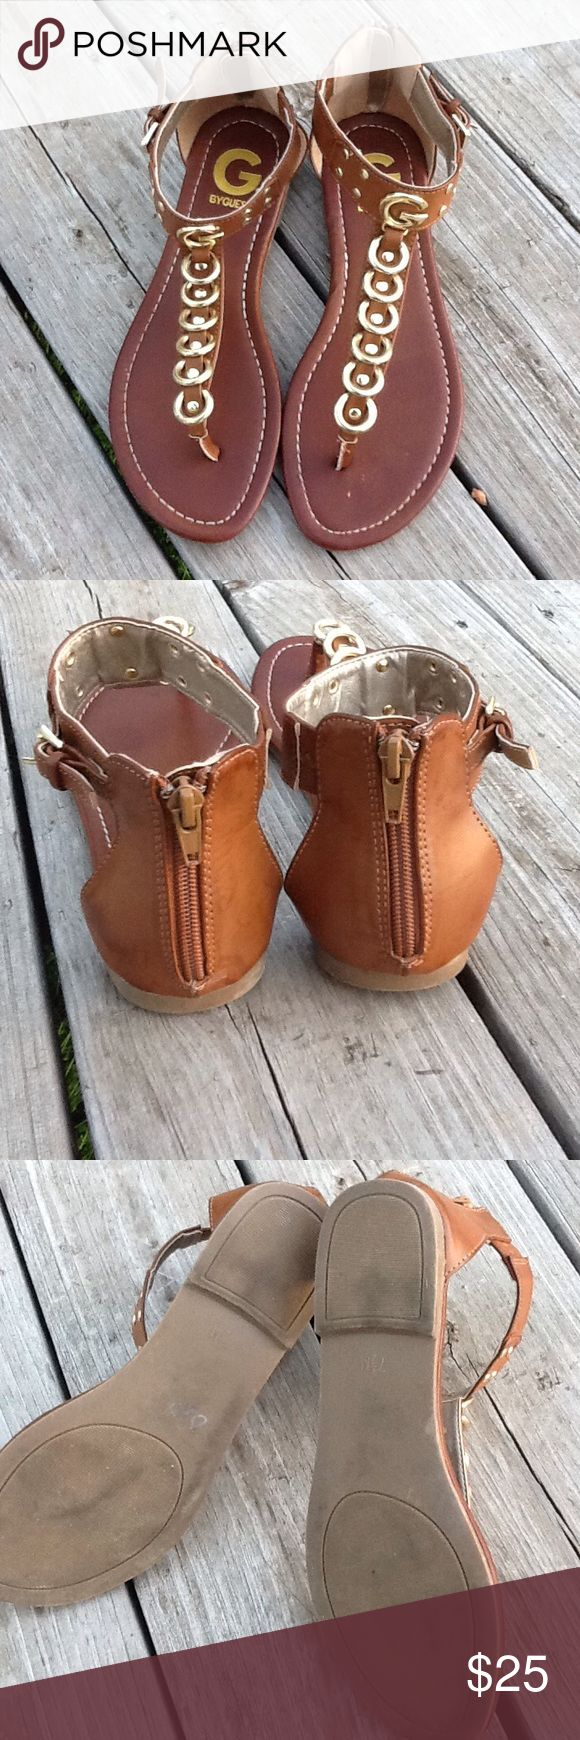 G by Guess Gladiator Sandals.☺️ Brown Zip Up Gladiator Thong Sandal. Gold Detail. G by Guess. Size:7.5 M Pre-Loved. No Trades. No Holds. Reasonable Offers Considered. G by Guess Shoes Sandals